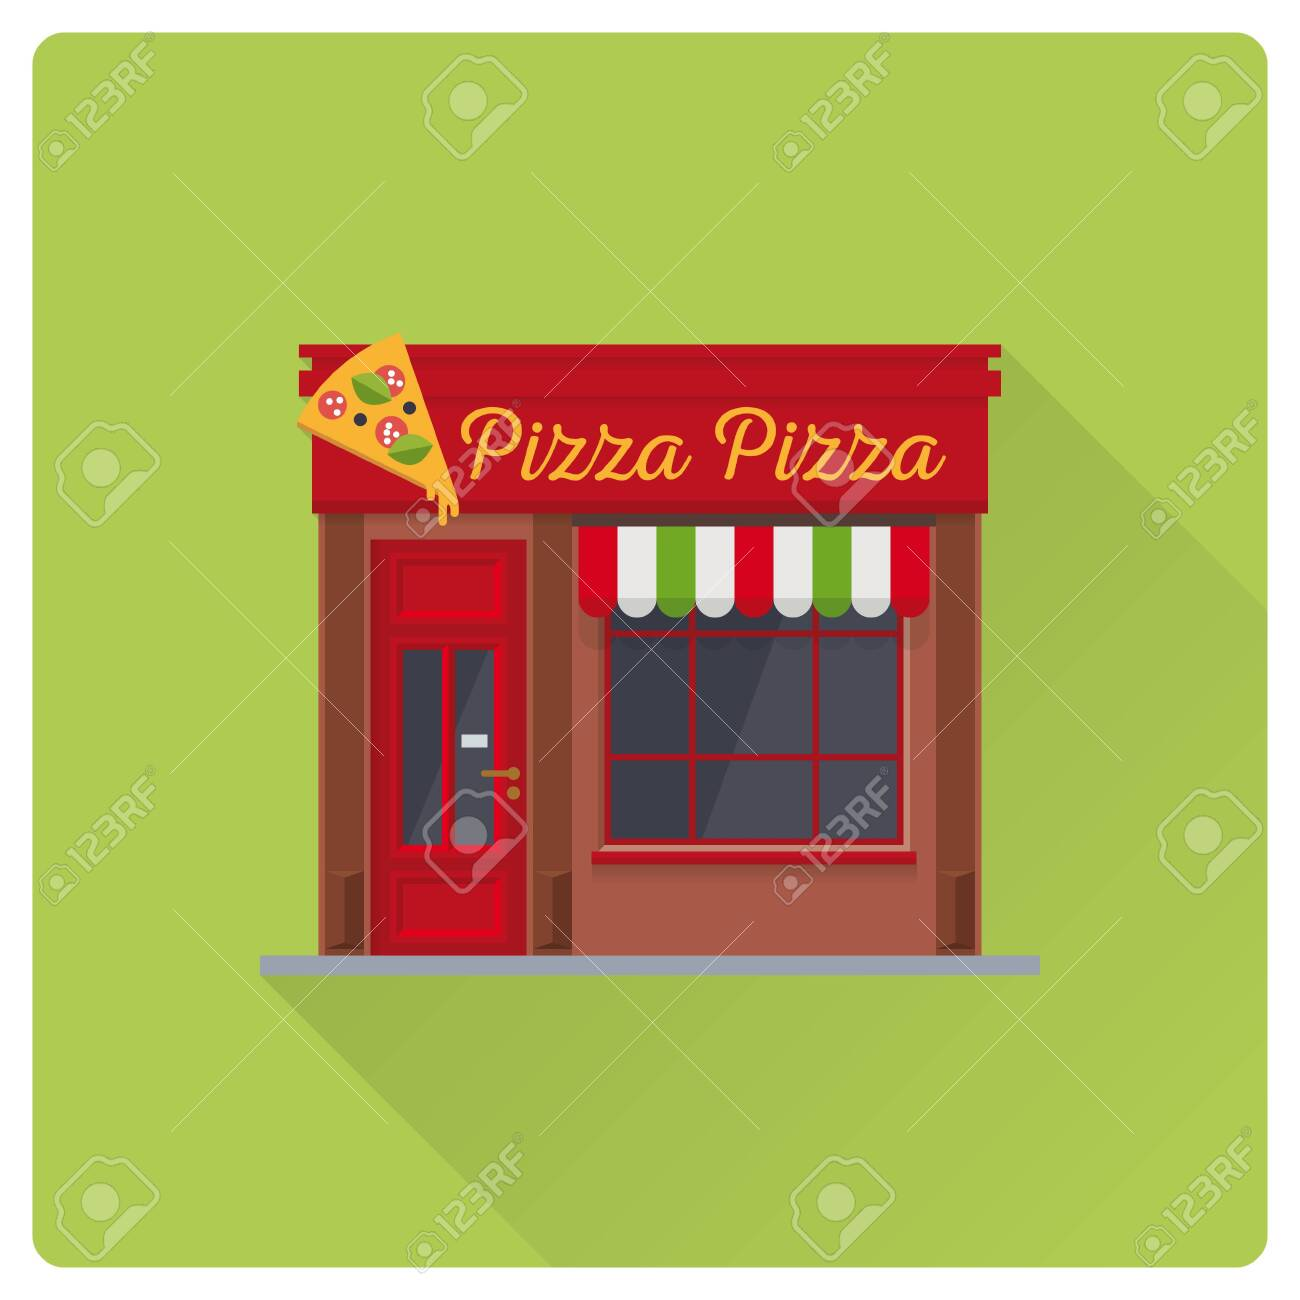 Flat Design Long Shadow Pizzeria Building Vector Illustration Cute Italian Restaurant Facade Ilustraciones Vectoriales Clip Art Vectorizado Libre De Derechos Image 146113291